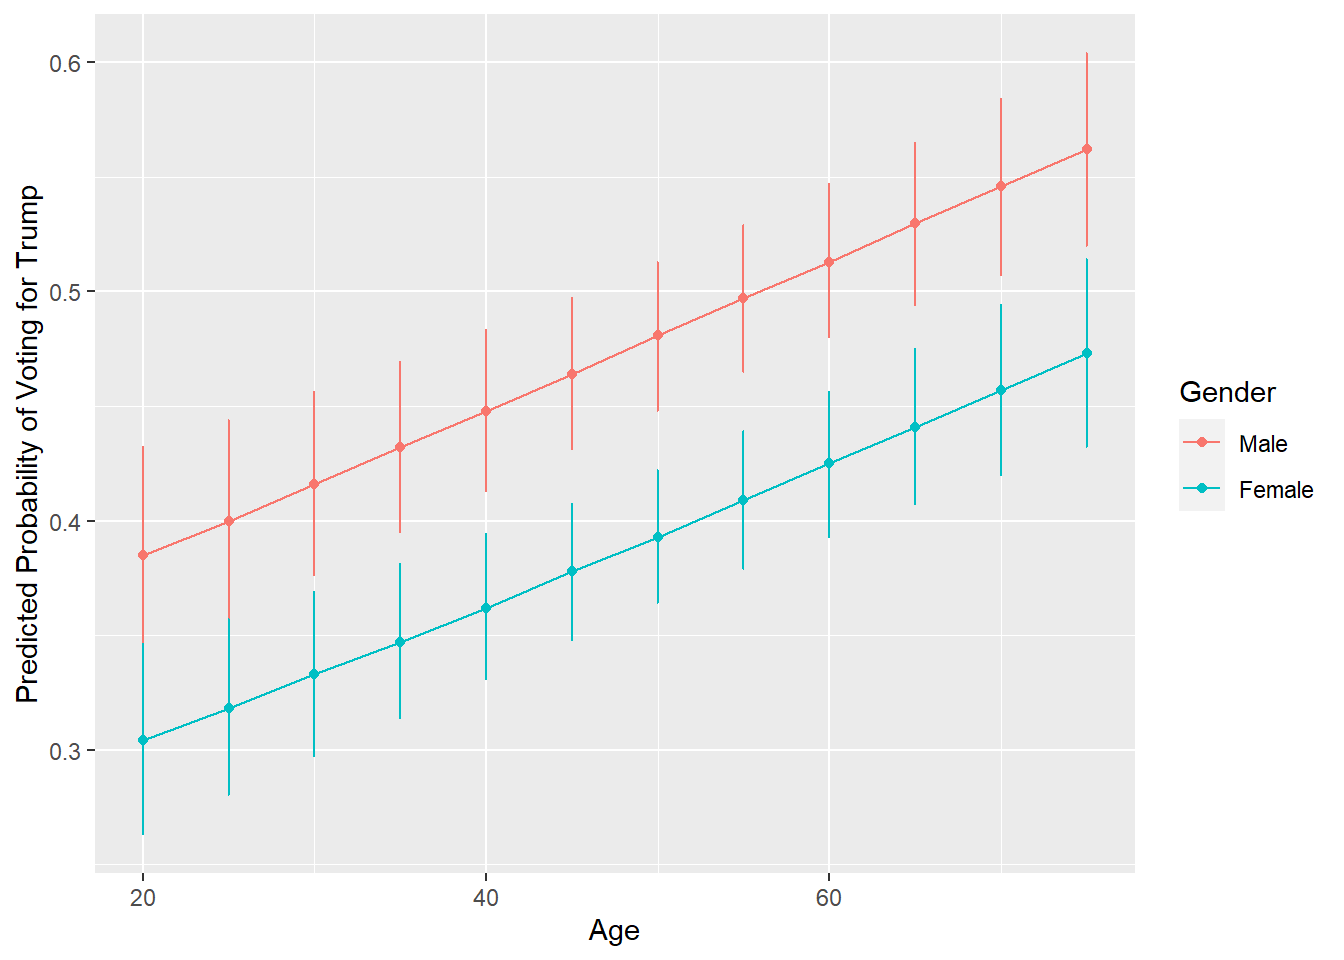 Predicted Probability Plot of Vote by Age and Gender